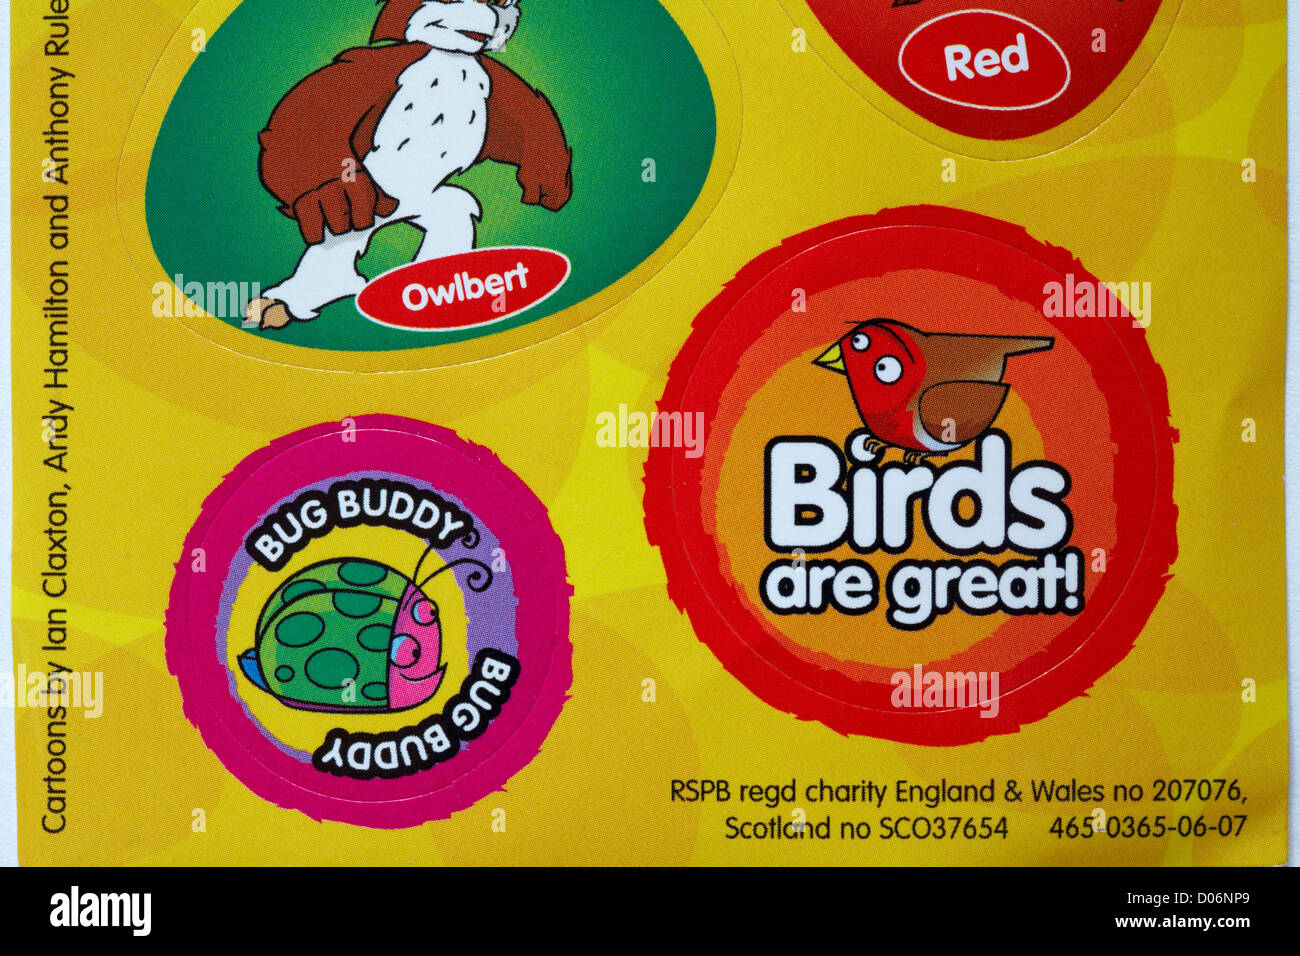 Sheet of rspb wildlife stickers stickers birds are great and bug buddy stock image